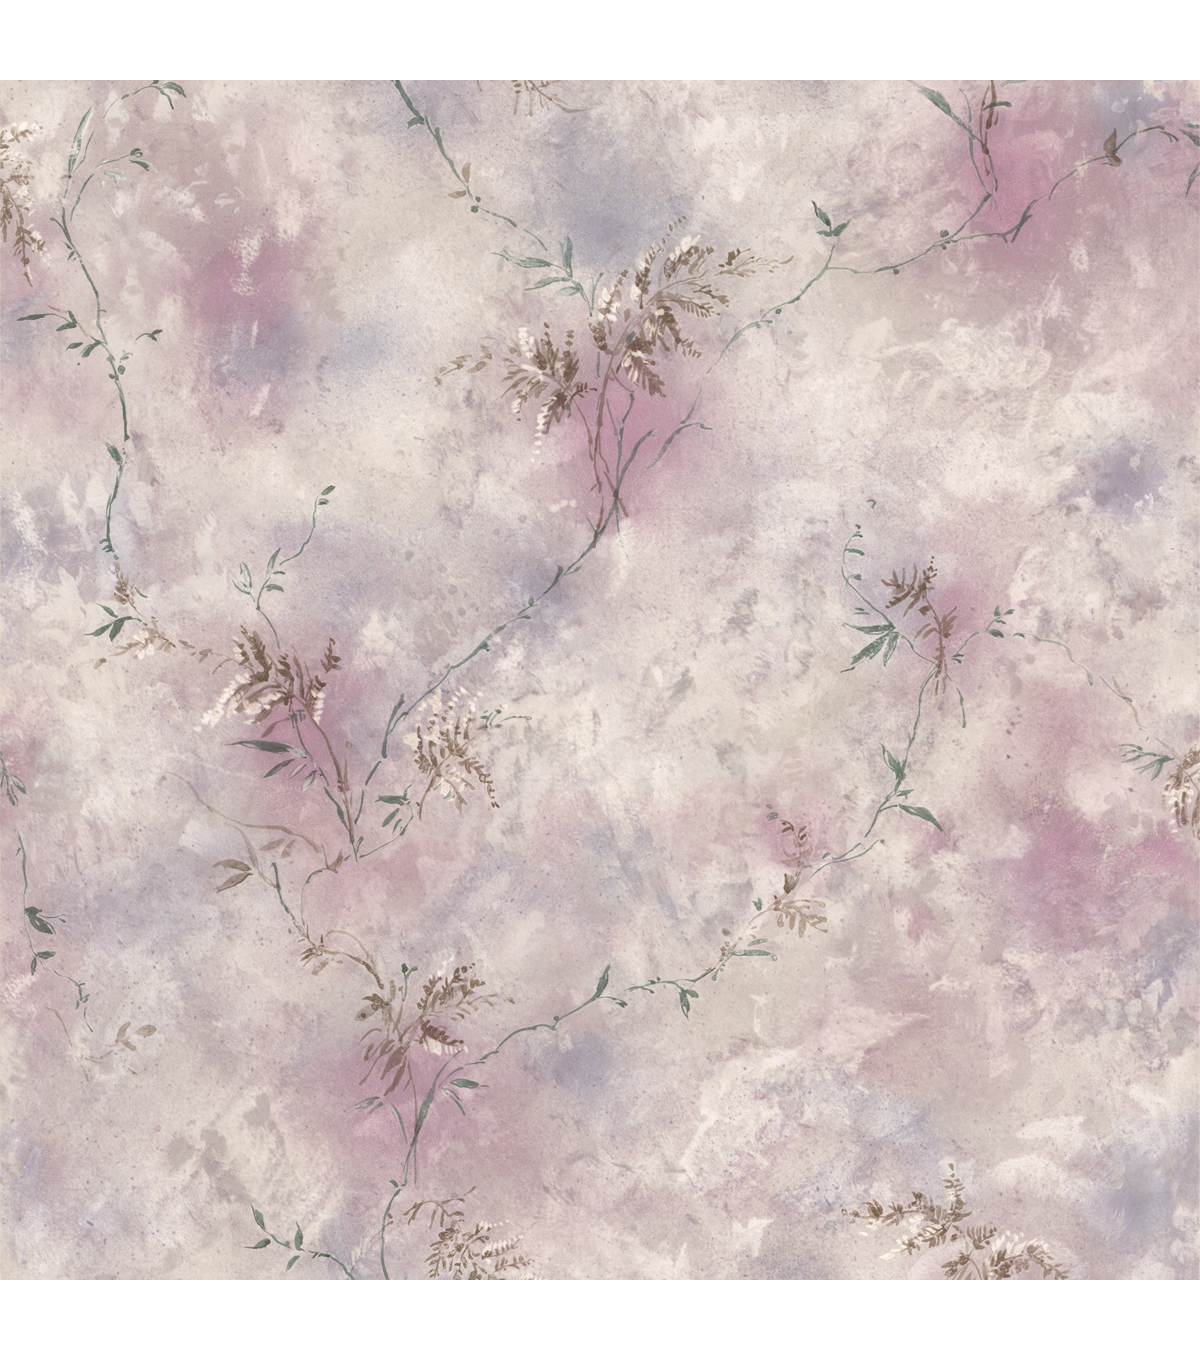 Bertrand Purple Satin Fern Texture Wallpaper Sample